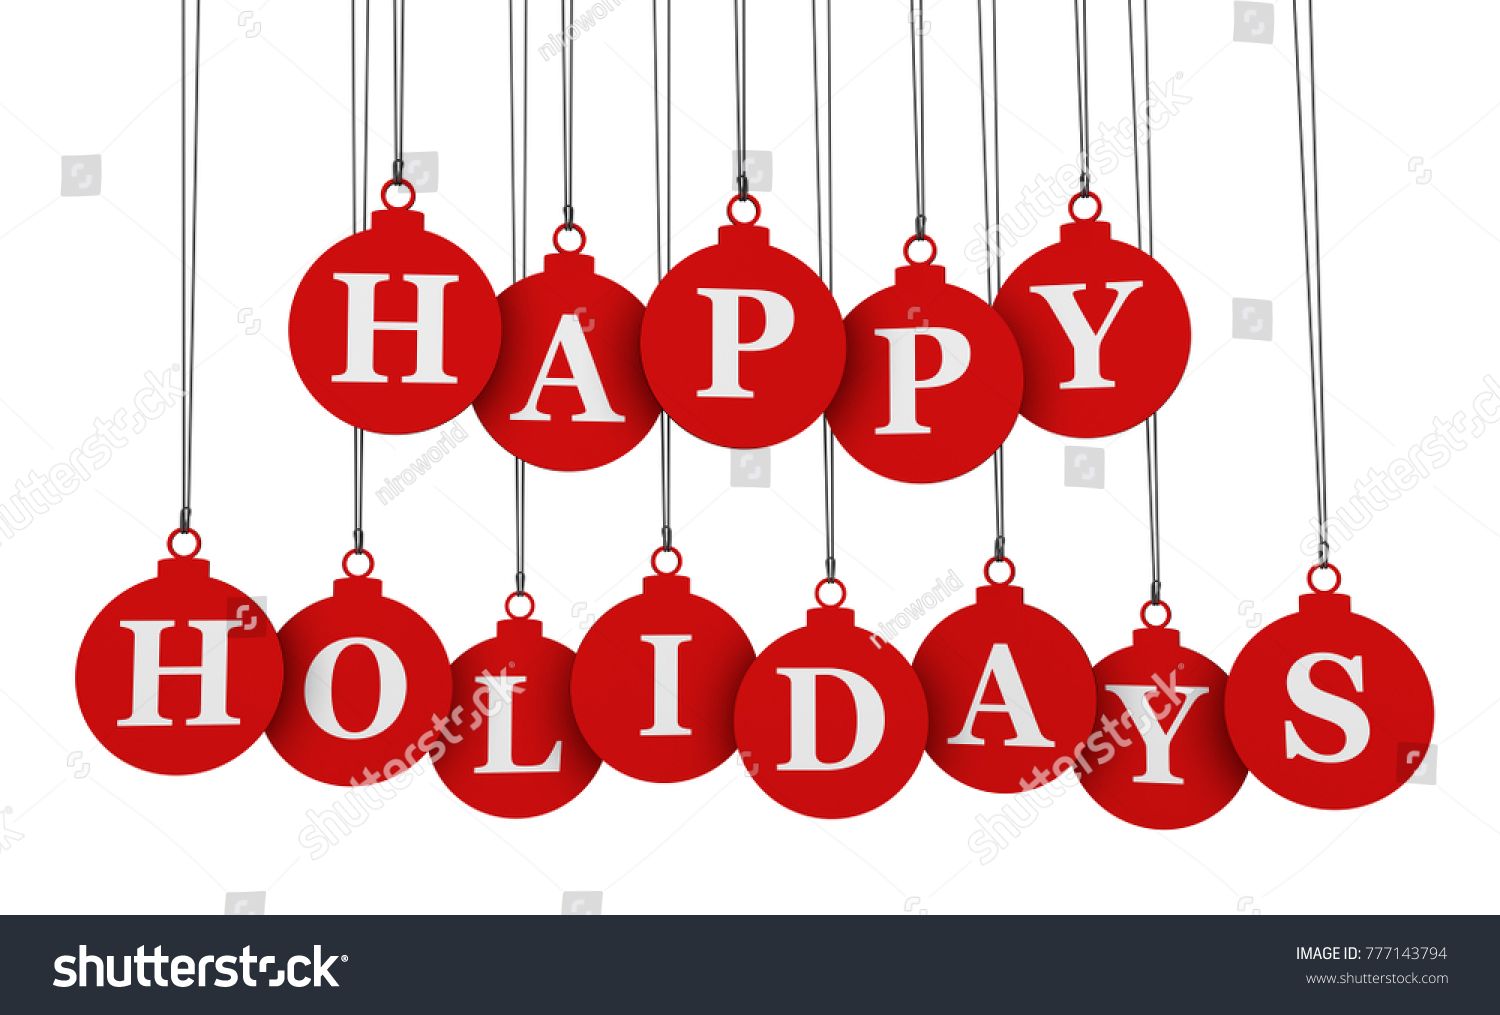 Happy holidays greeting message sign on stock illustration 777143794 happy holidays greeting message and sign on red hanging bauble shaped tags 3d illustration isolated on kristyandbryce Gallery